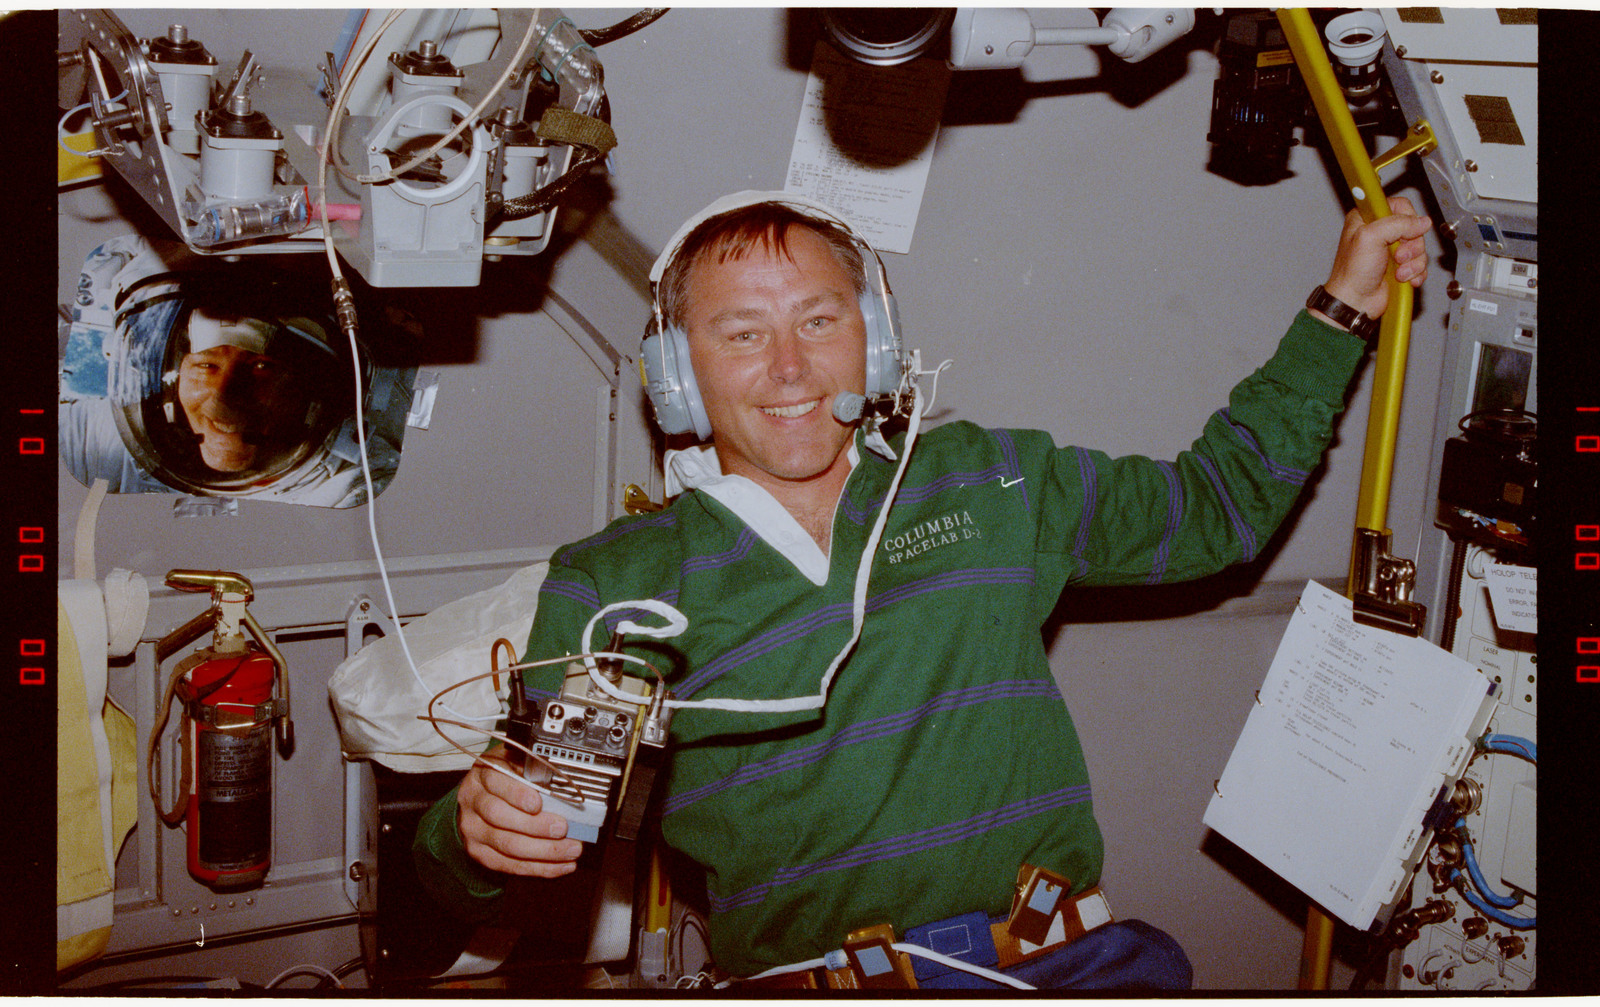 STS055-203-028 - STS-055 - Crewmember in the D-2 Spacelab with Shuttle Amateur Radio Experiment II.